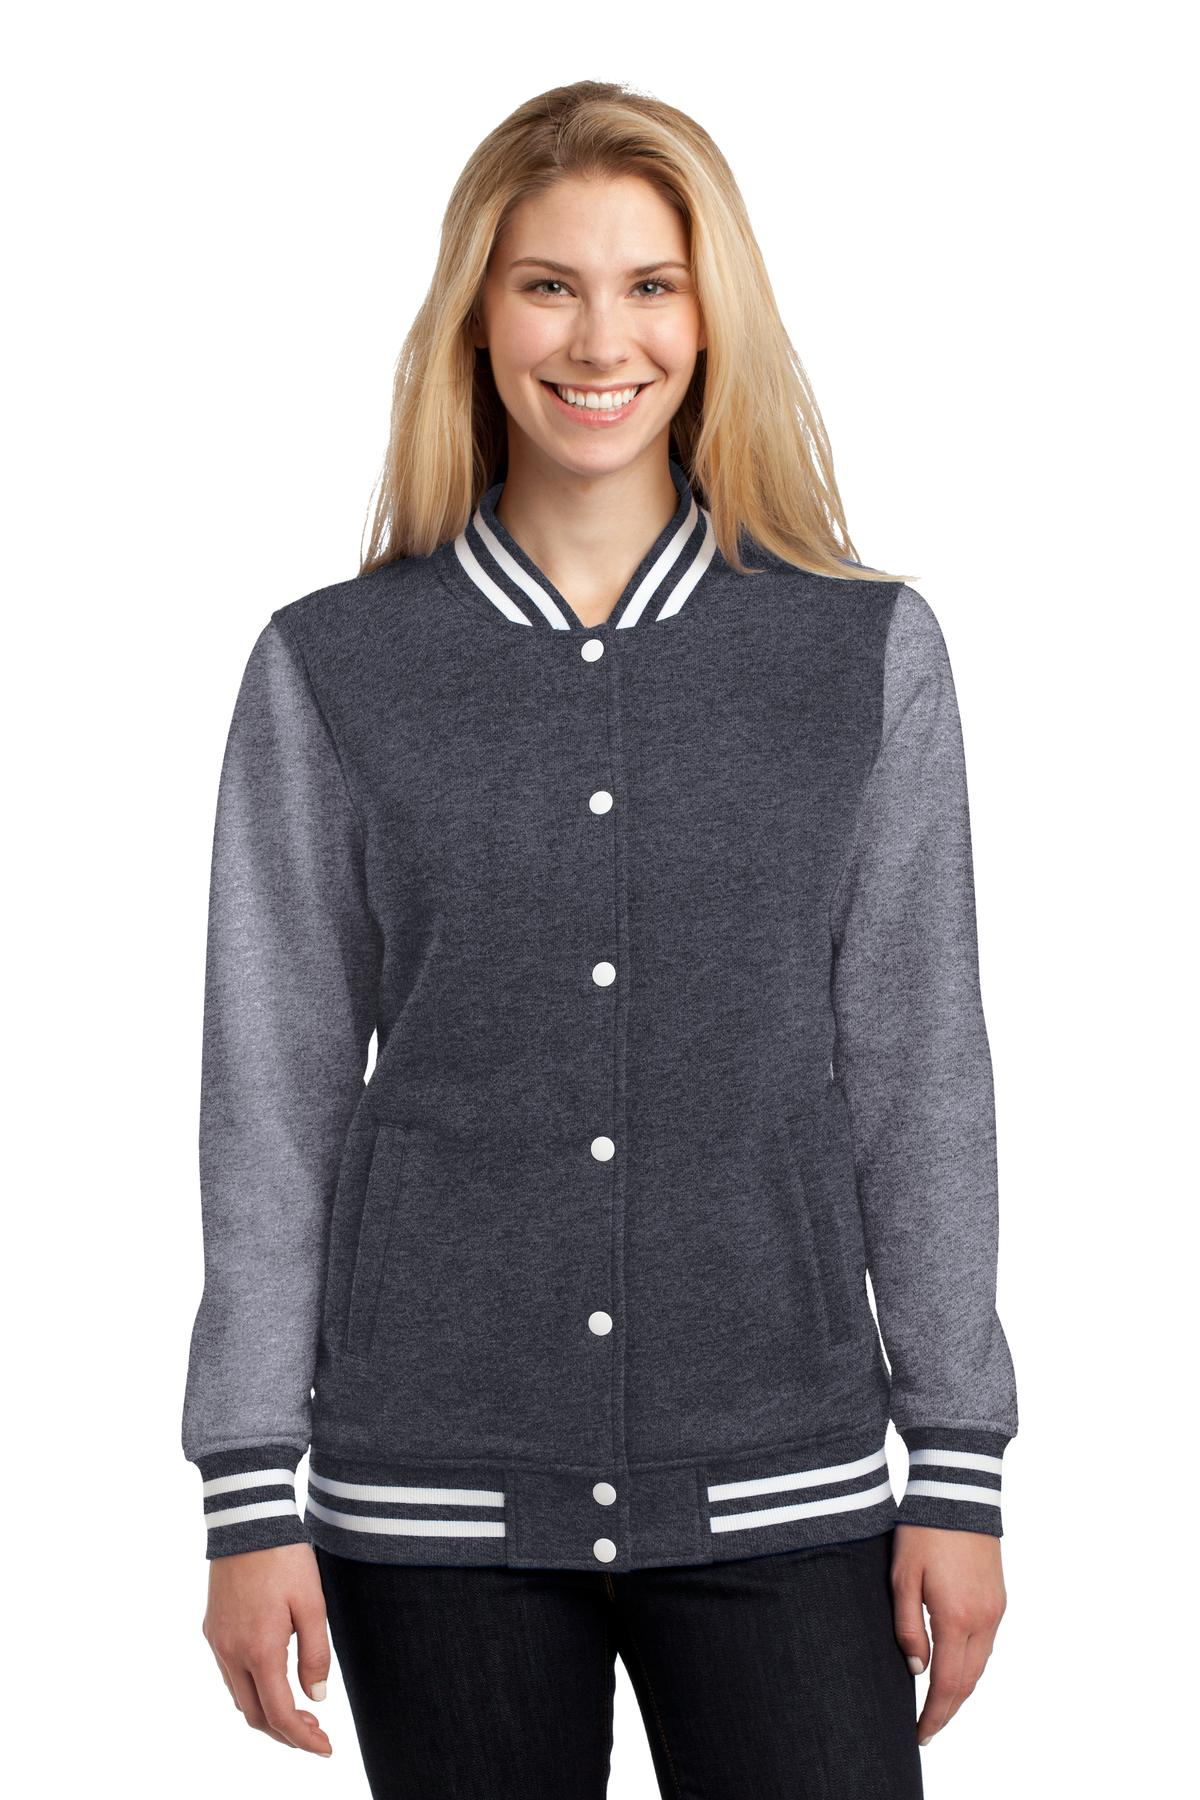 Sport-Tek ®  Ladies Fleece Letterman Jacket. LST270 - Graphite Heather/ Vintage Heather